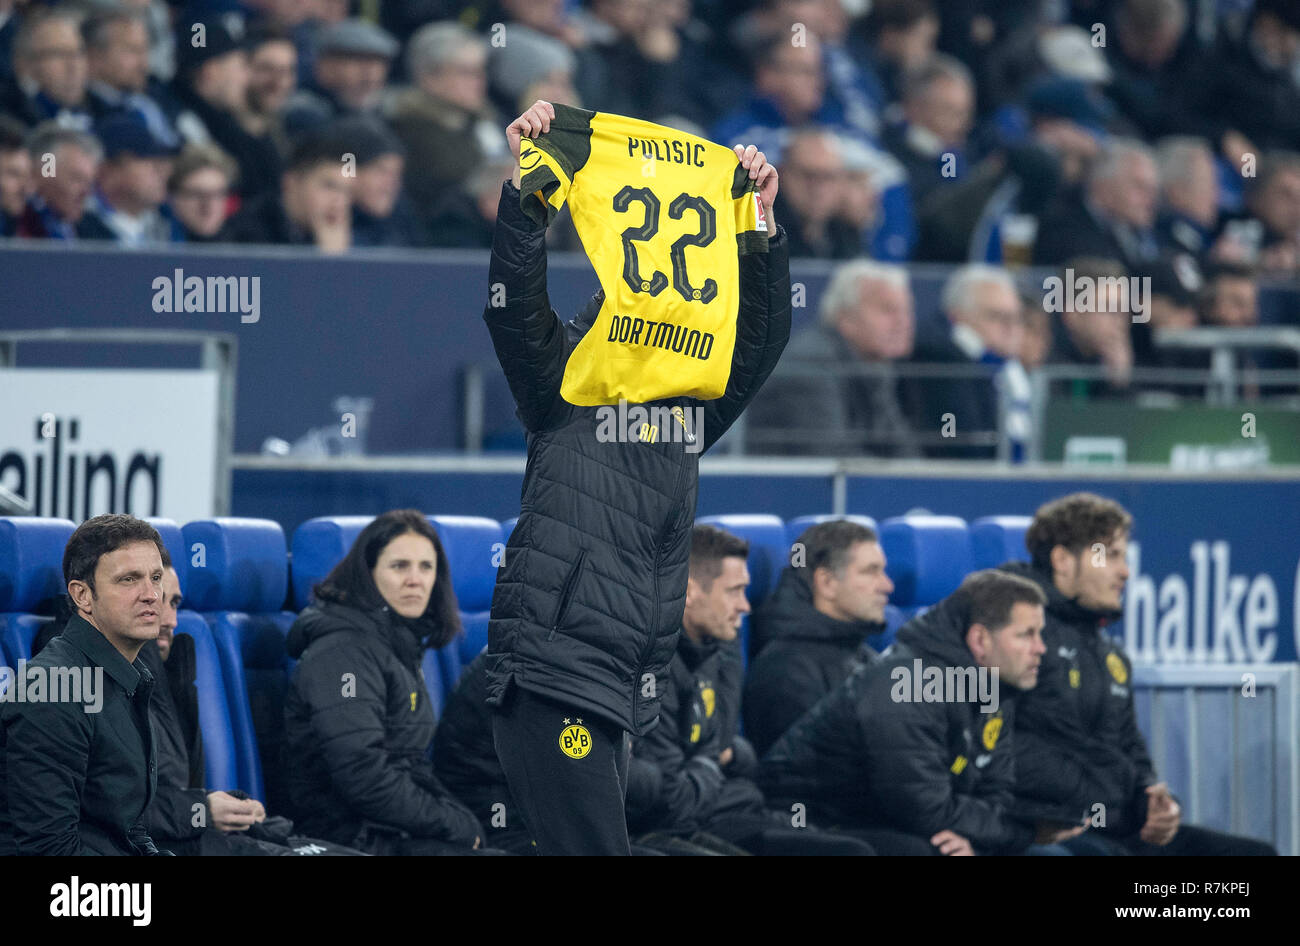 Gelsenkirchen, Deutschland. 08th Dec, 2018. Feature, a supporter holds up the jersey of Christian PULISIC (DO/not pictured), Substitutions, Football 1.Bundesliga, 14.matchday, FC Schalke 04 (GE) - Borussia Dortmund (DO) 1: 2, on 08.13.2018 in Gelsenkirchen/Germany. ## DFL regulations prohibit any use of photographs as image sequences and/or quasi-video ##   usage worldwide Credit: dpa/Alamy Live News - Stock Image